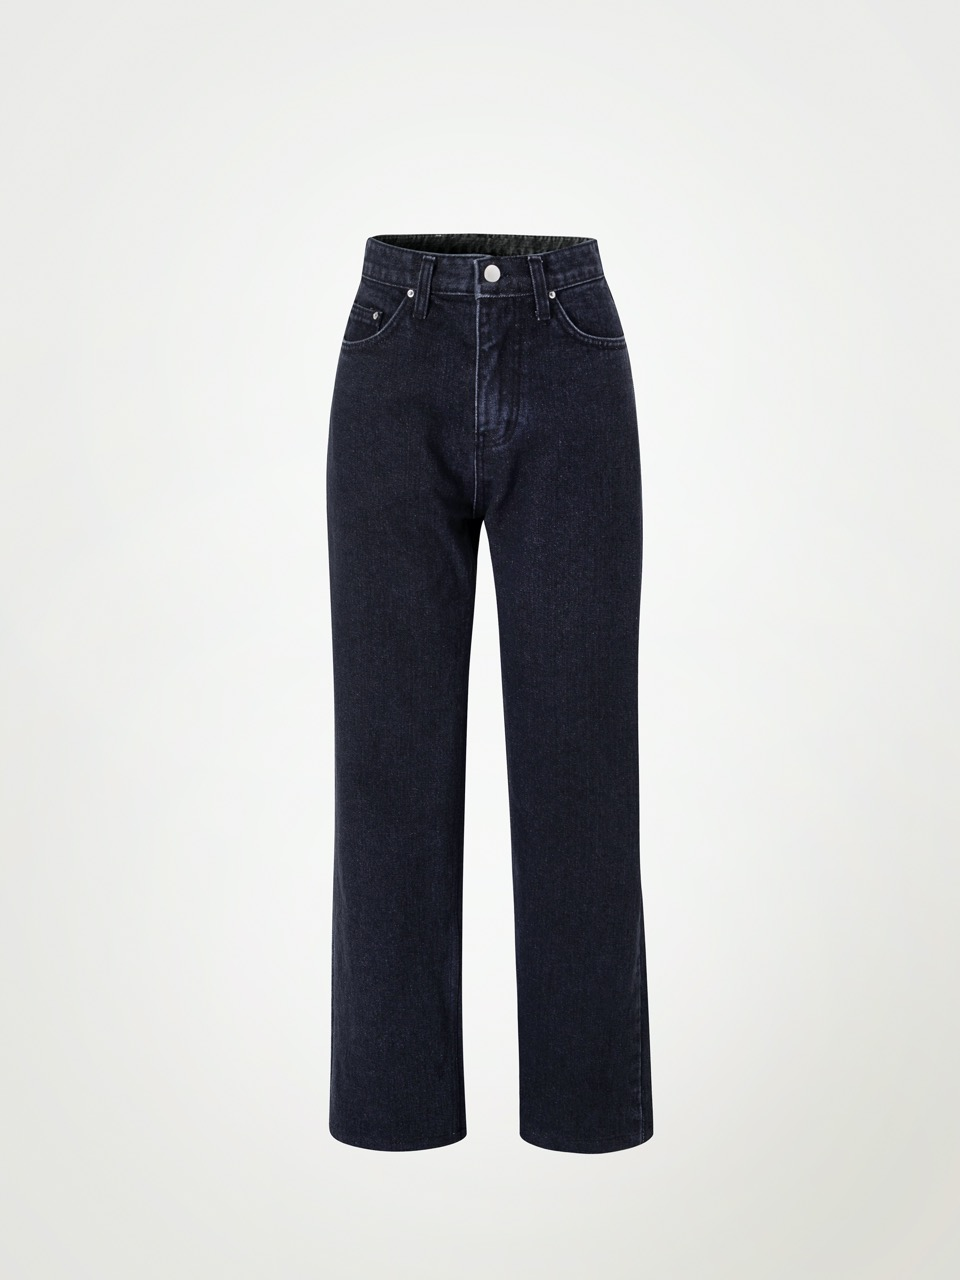 4W Black Washing Straight-fit Jeans